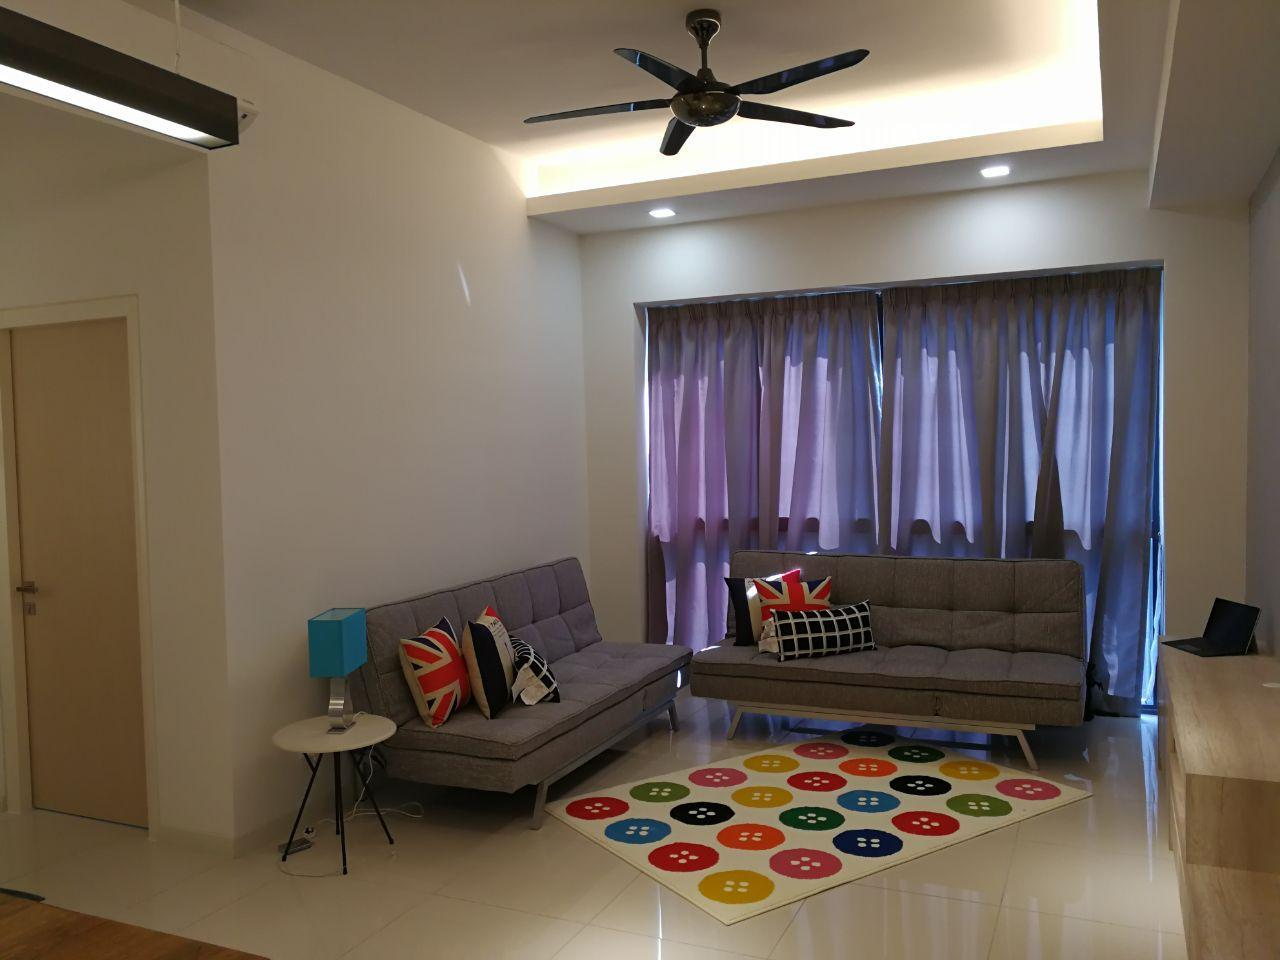 5 8 Pax Spacious + Luxury HomeStay With WiFi